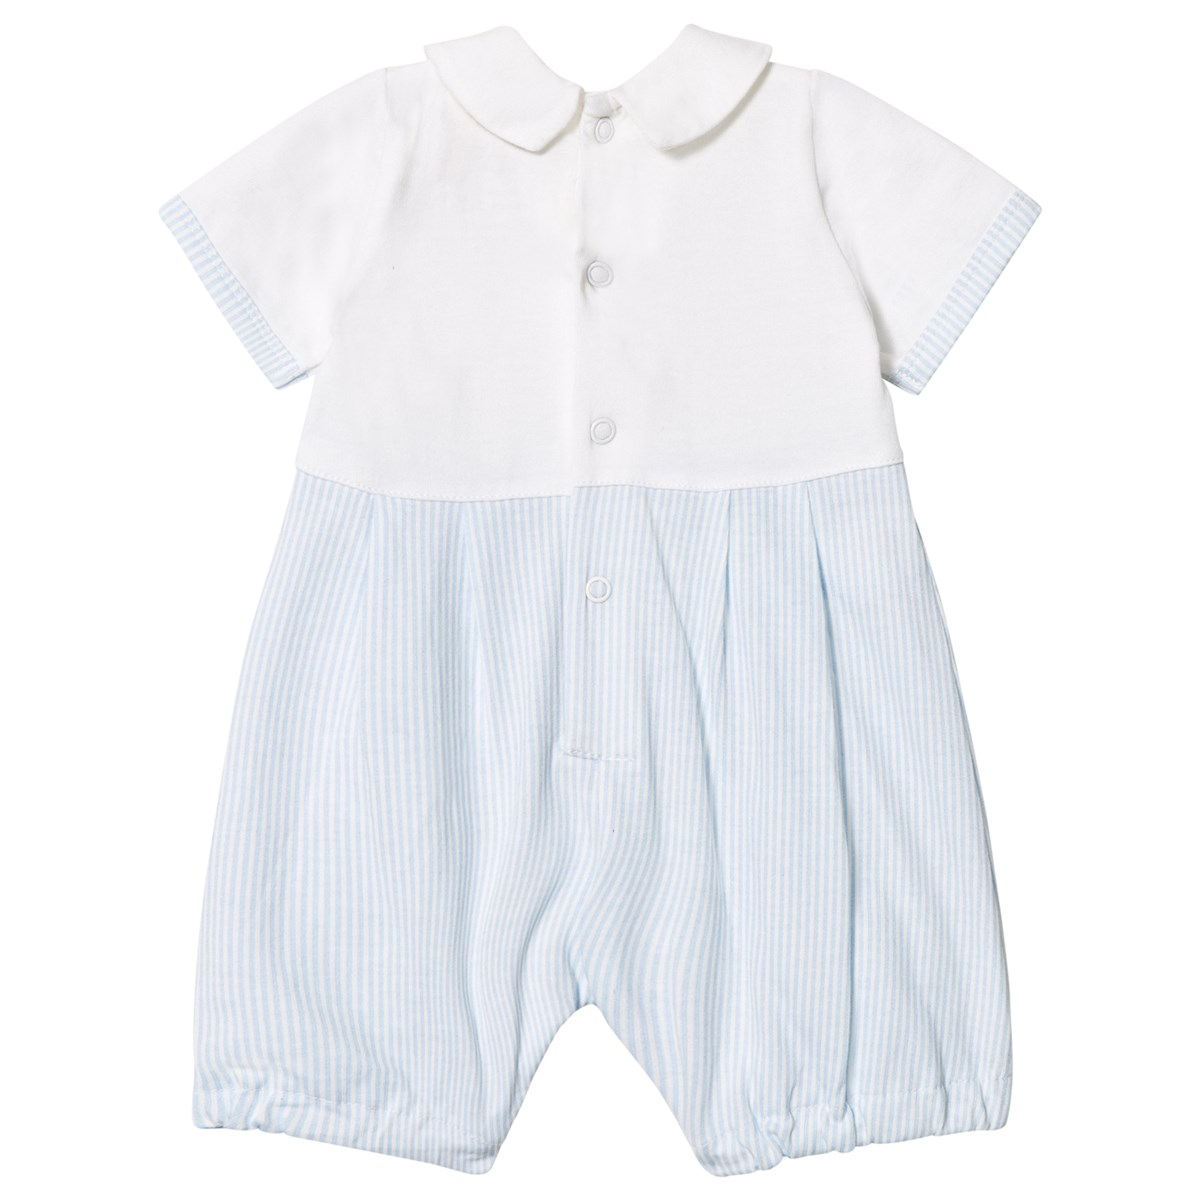 c2f342108d59 Emile et Rose Pale Blue and White Jersey Collared Romper